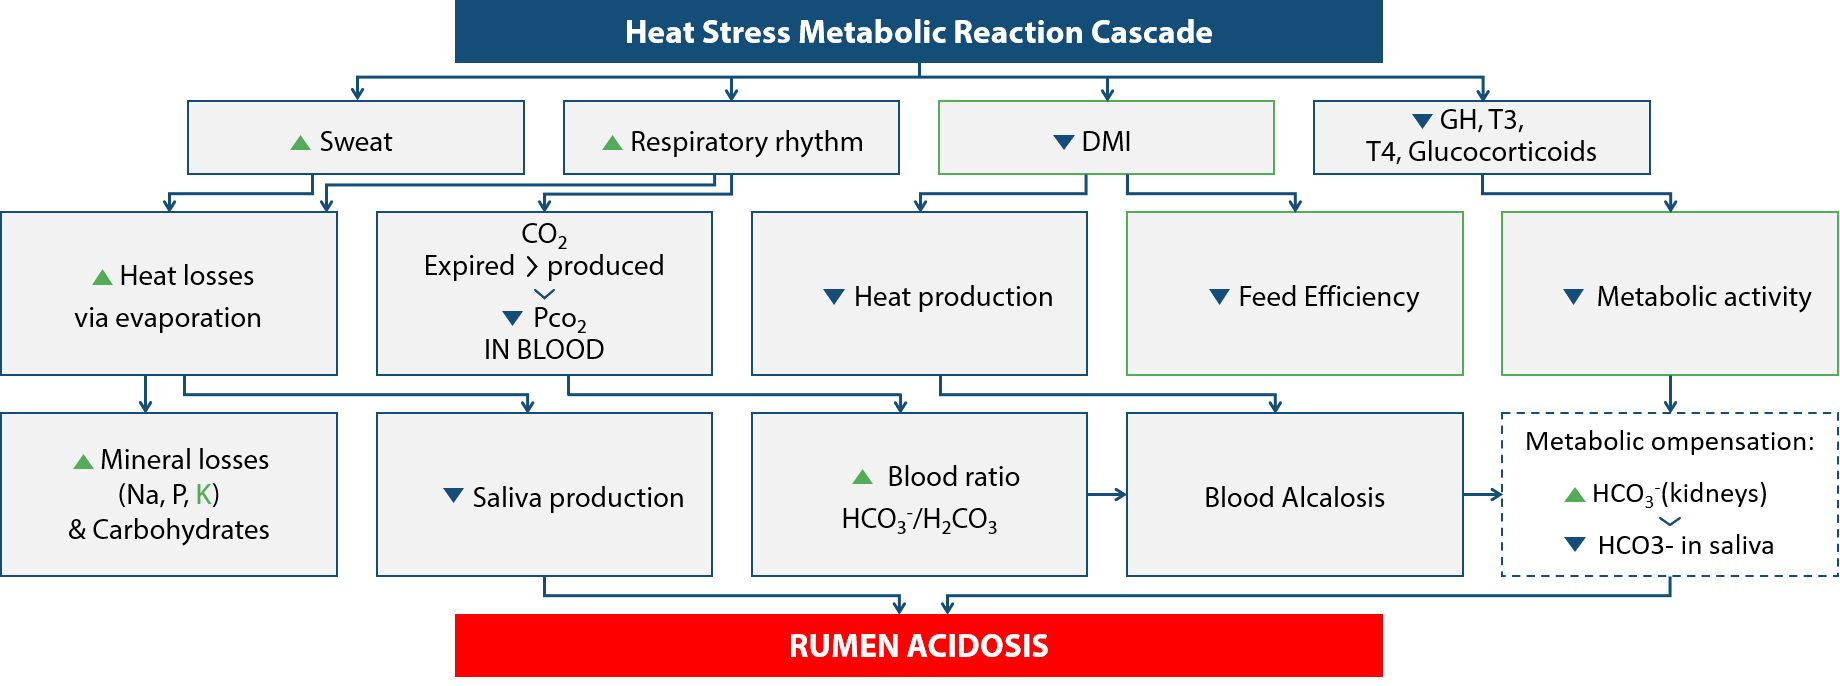 Dairy cow heat stress metabolic reaction cascade